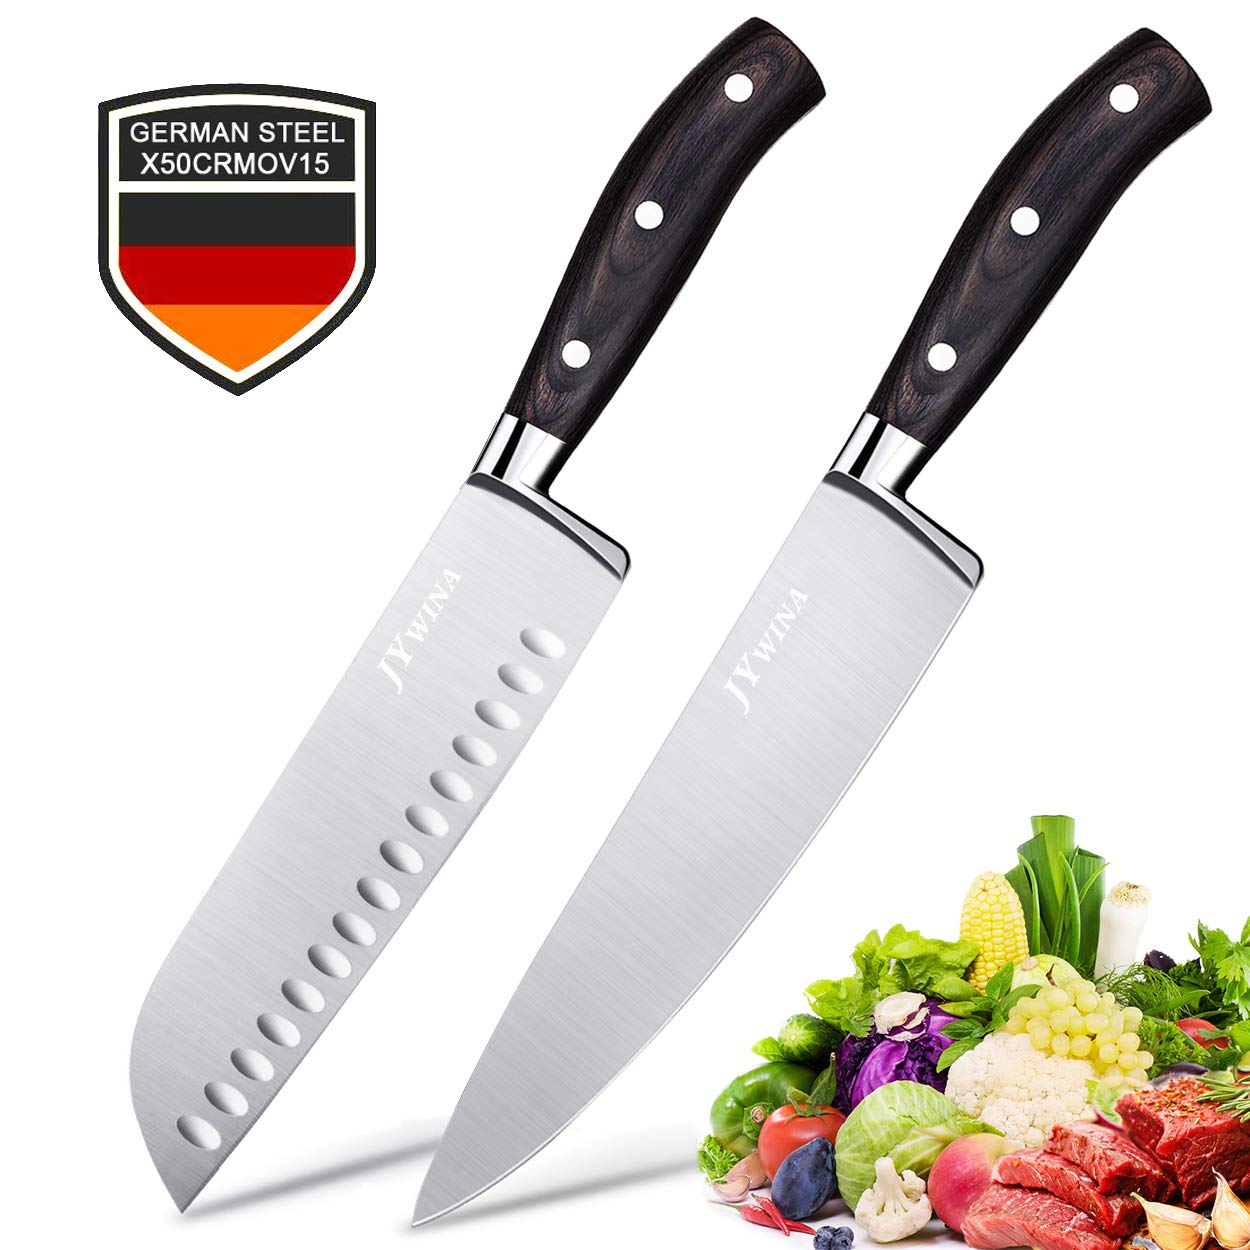 2-Piece Ultra Sharp Chef Knives, 8 inch Chef Knife & 7 inch Santoku Knife,Japanese Razor Sharp Blade Made of High Carbon Steel, Germany Stainless Steel, Ergonomic Handle for Vegetable, Fish and Meat by WOLLGORD